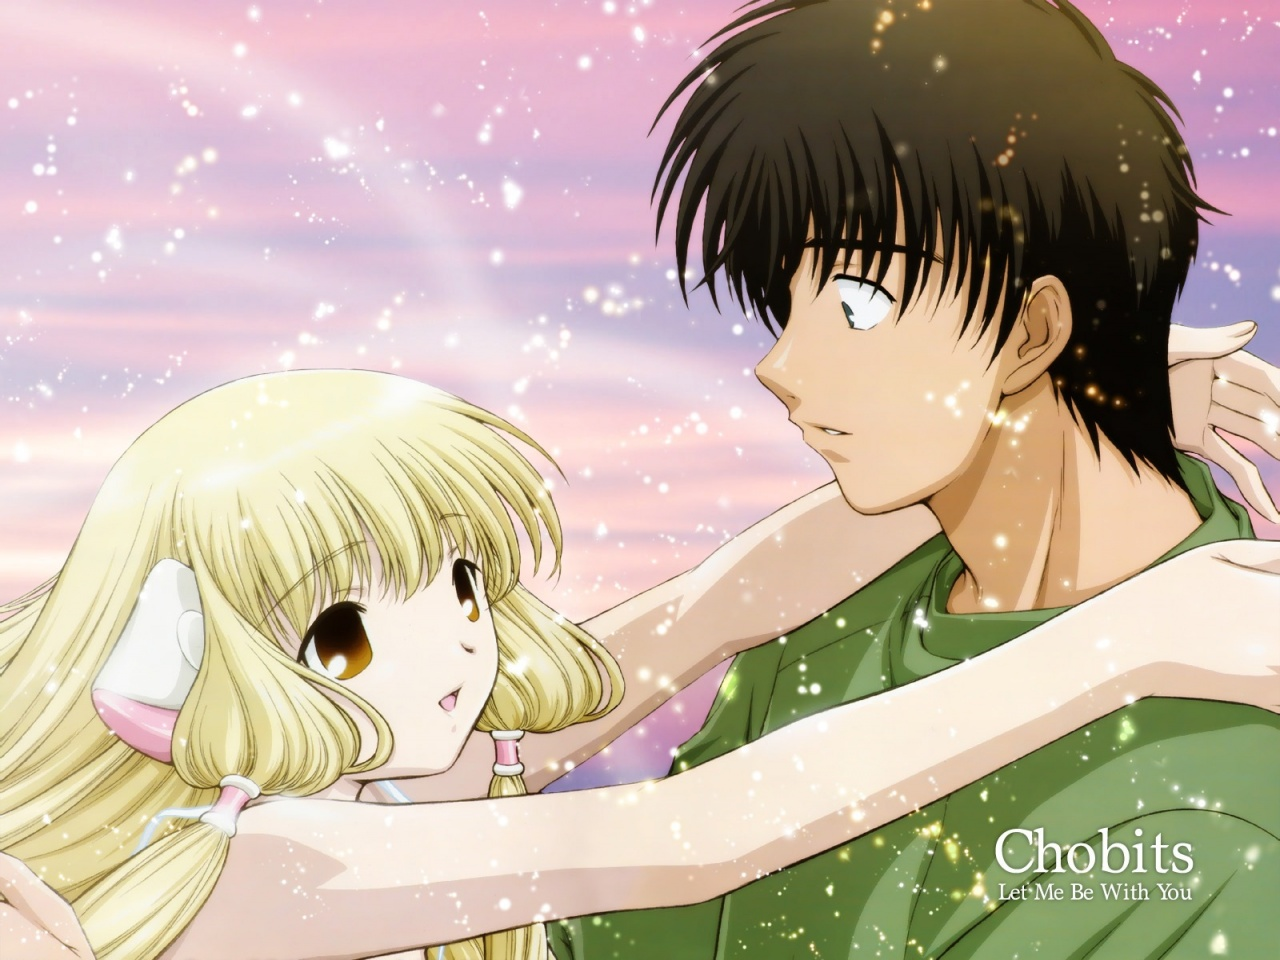 Chii And Hideki Wallpapers - 1280x960 - 317410